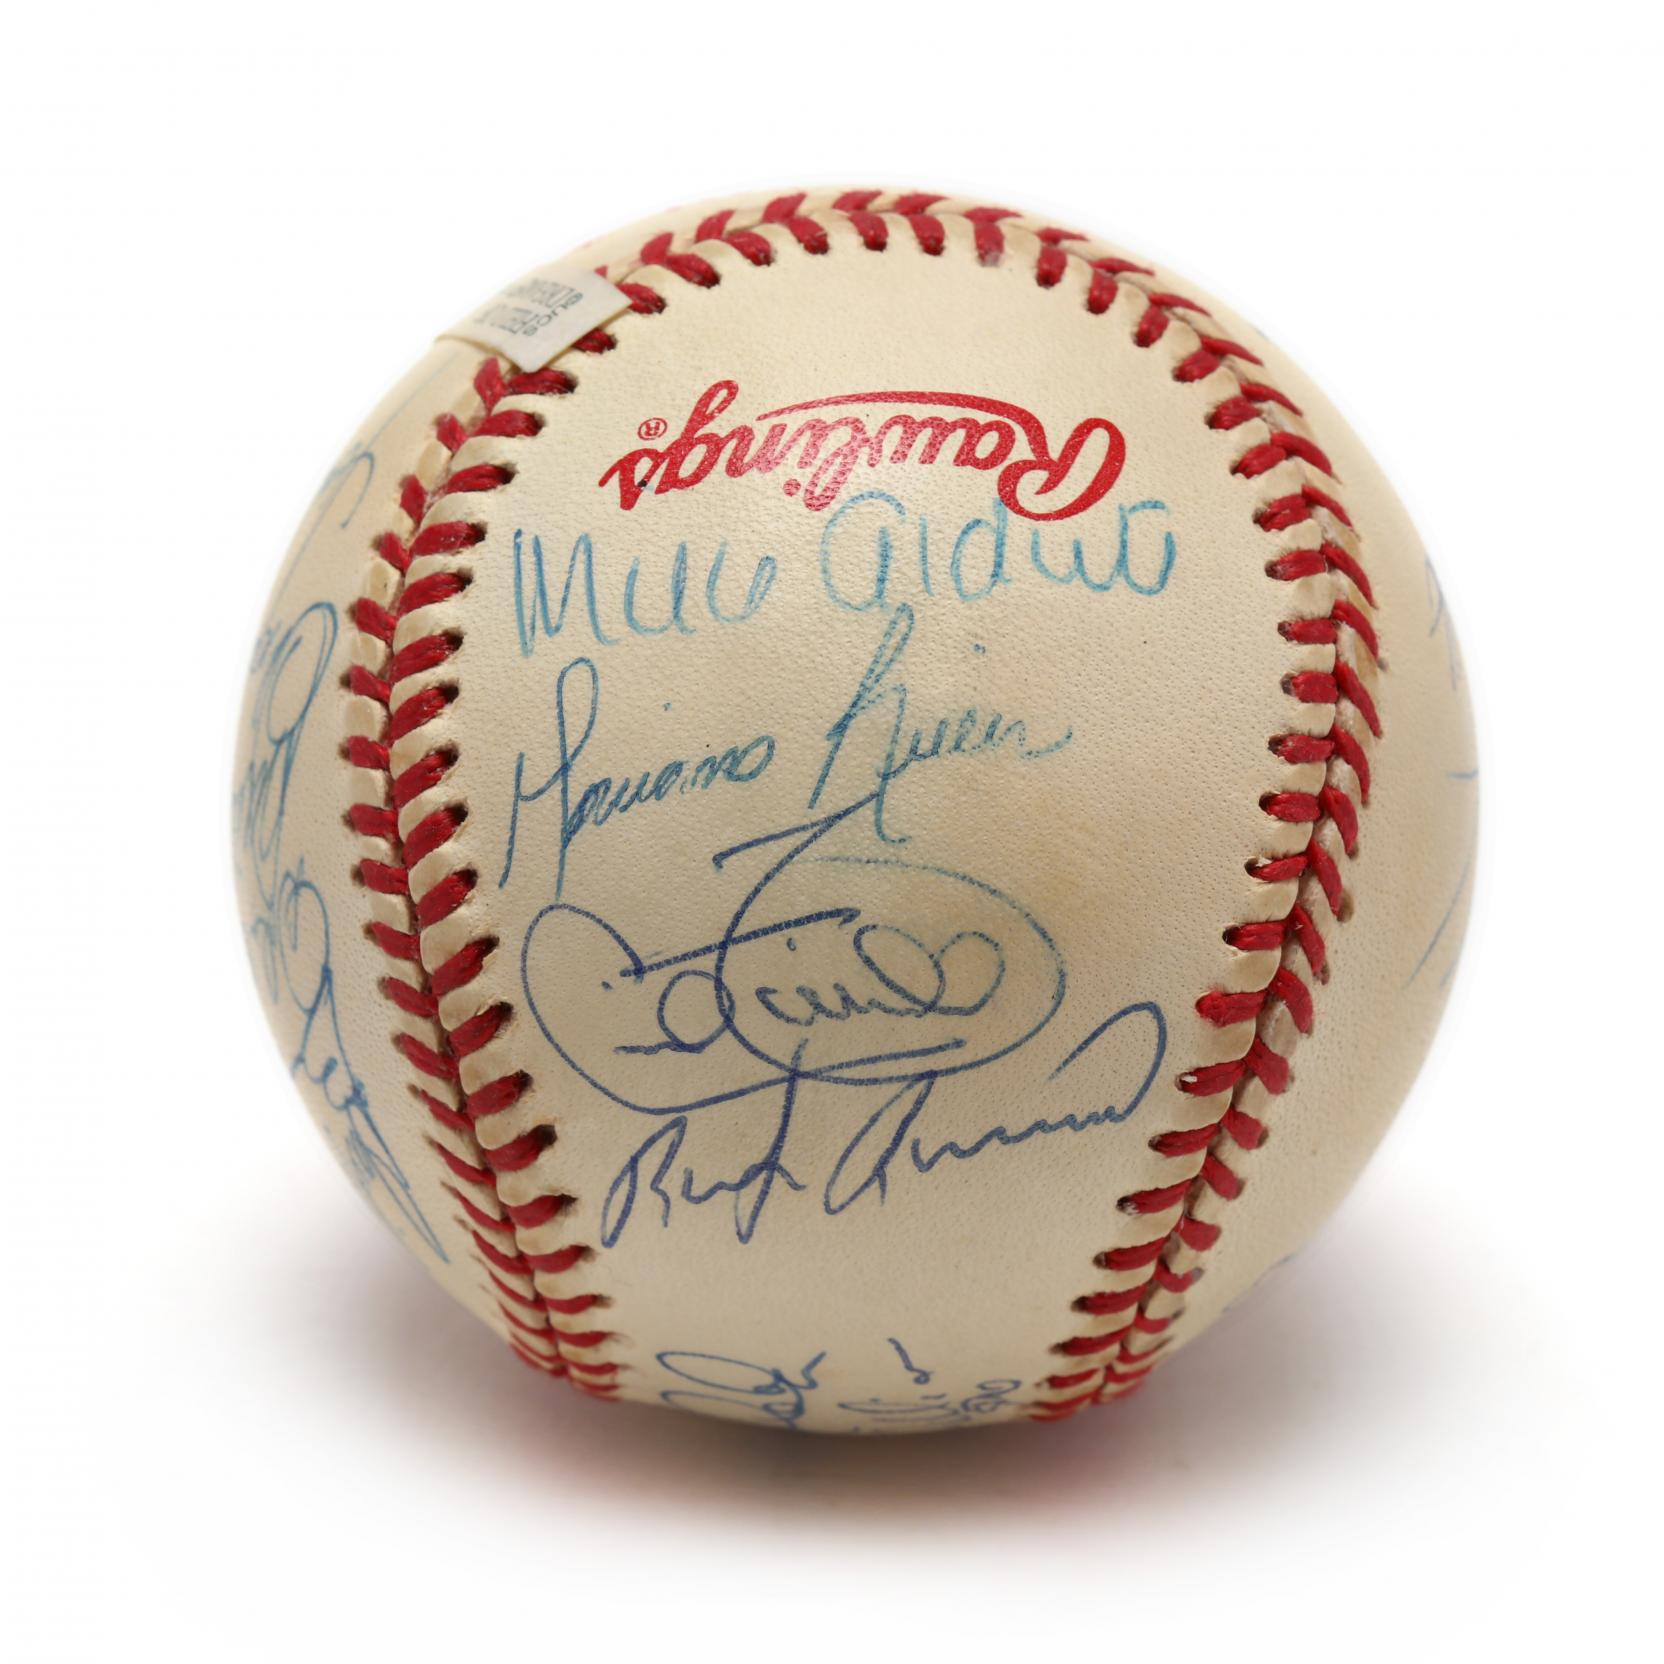 official-rawlings-1996-world-champion-new-york-yankees-team-signed-baseball-with-19-signatures-including-rookies-jeter-pettitte-rivera-psa-dna